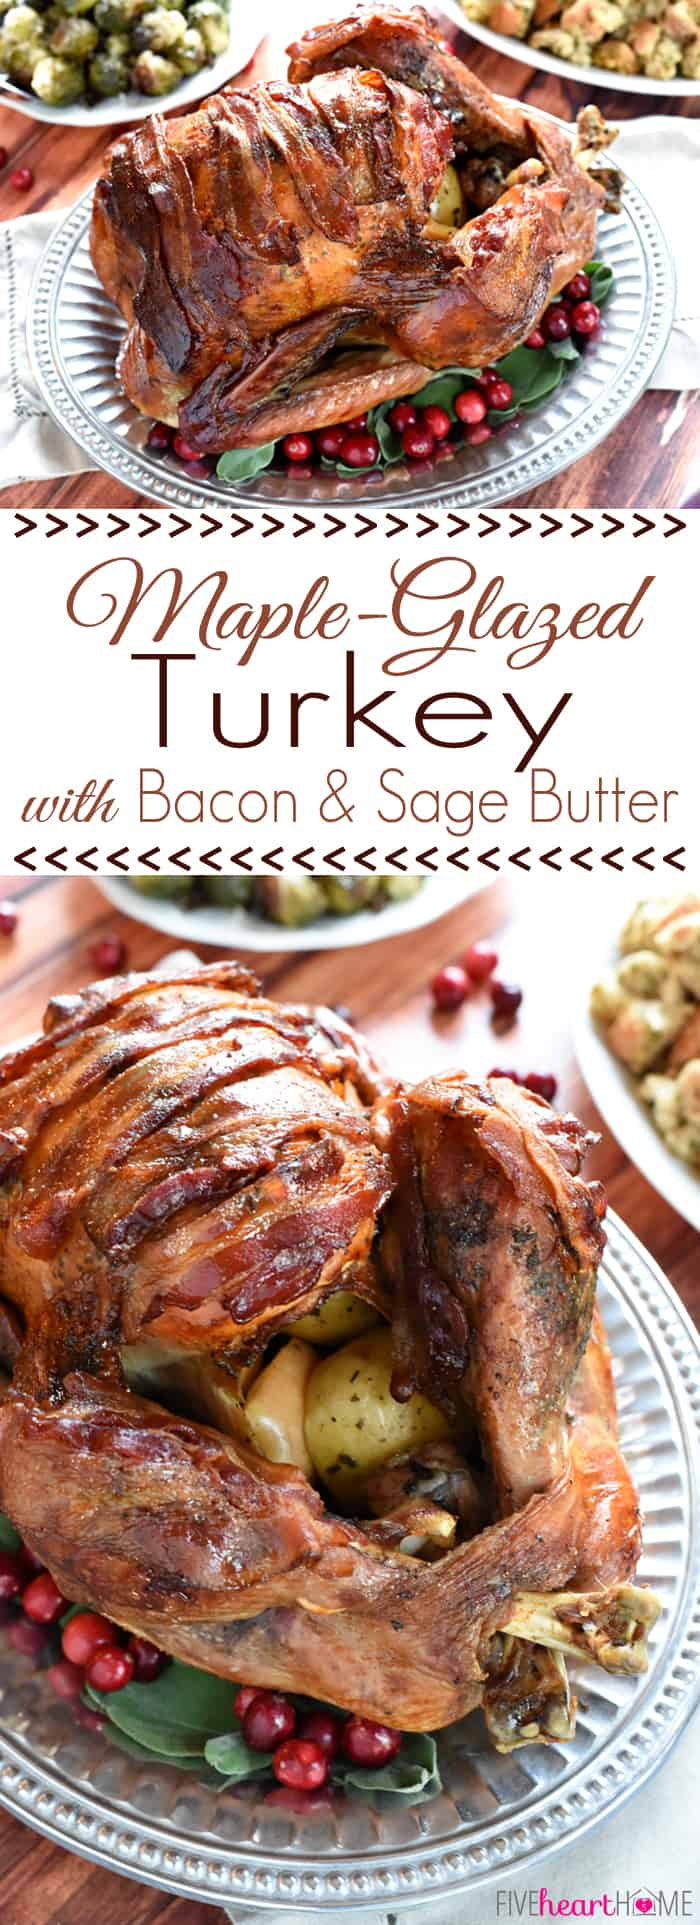 Tyler Florence 2020 Christmas Bacon Maple Syrup Maple Glazed Turkey with Bacon and Sage Butter • FIVEheartHOME